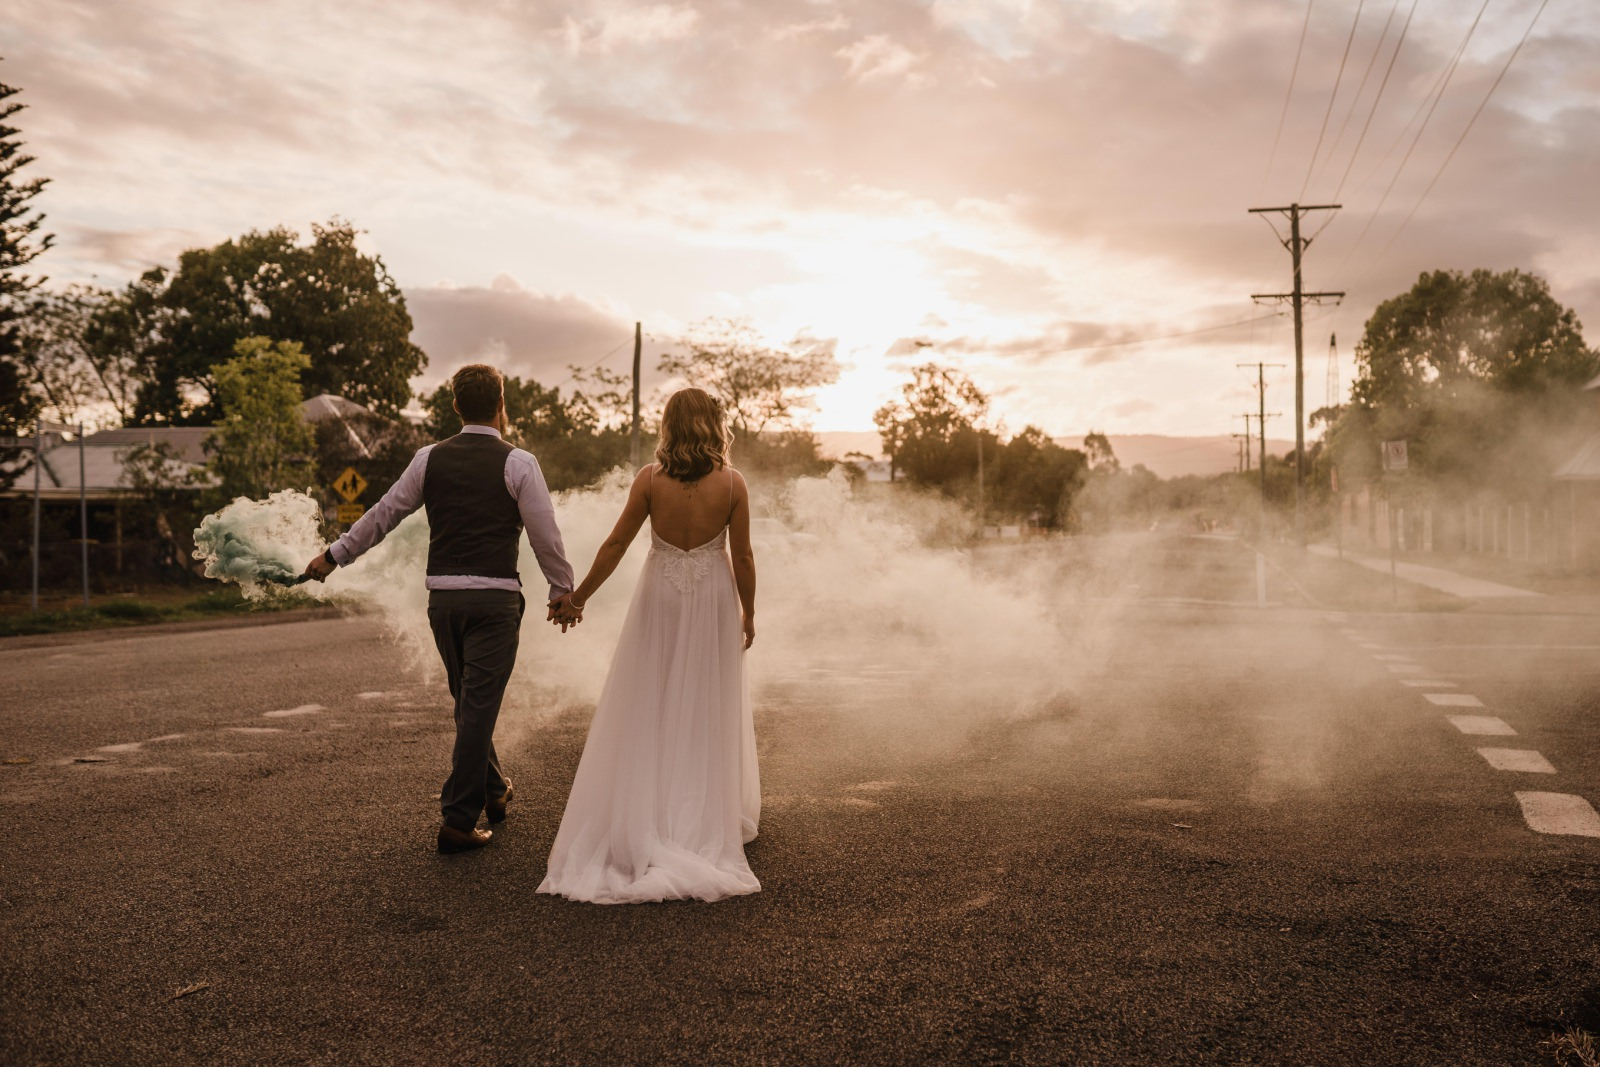 scone-wedding-photographer-upper-hunter-valley-59